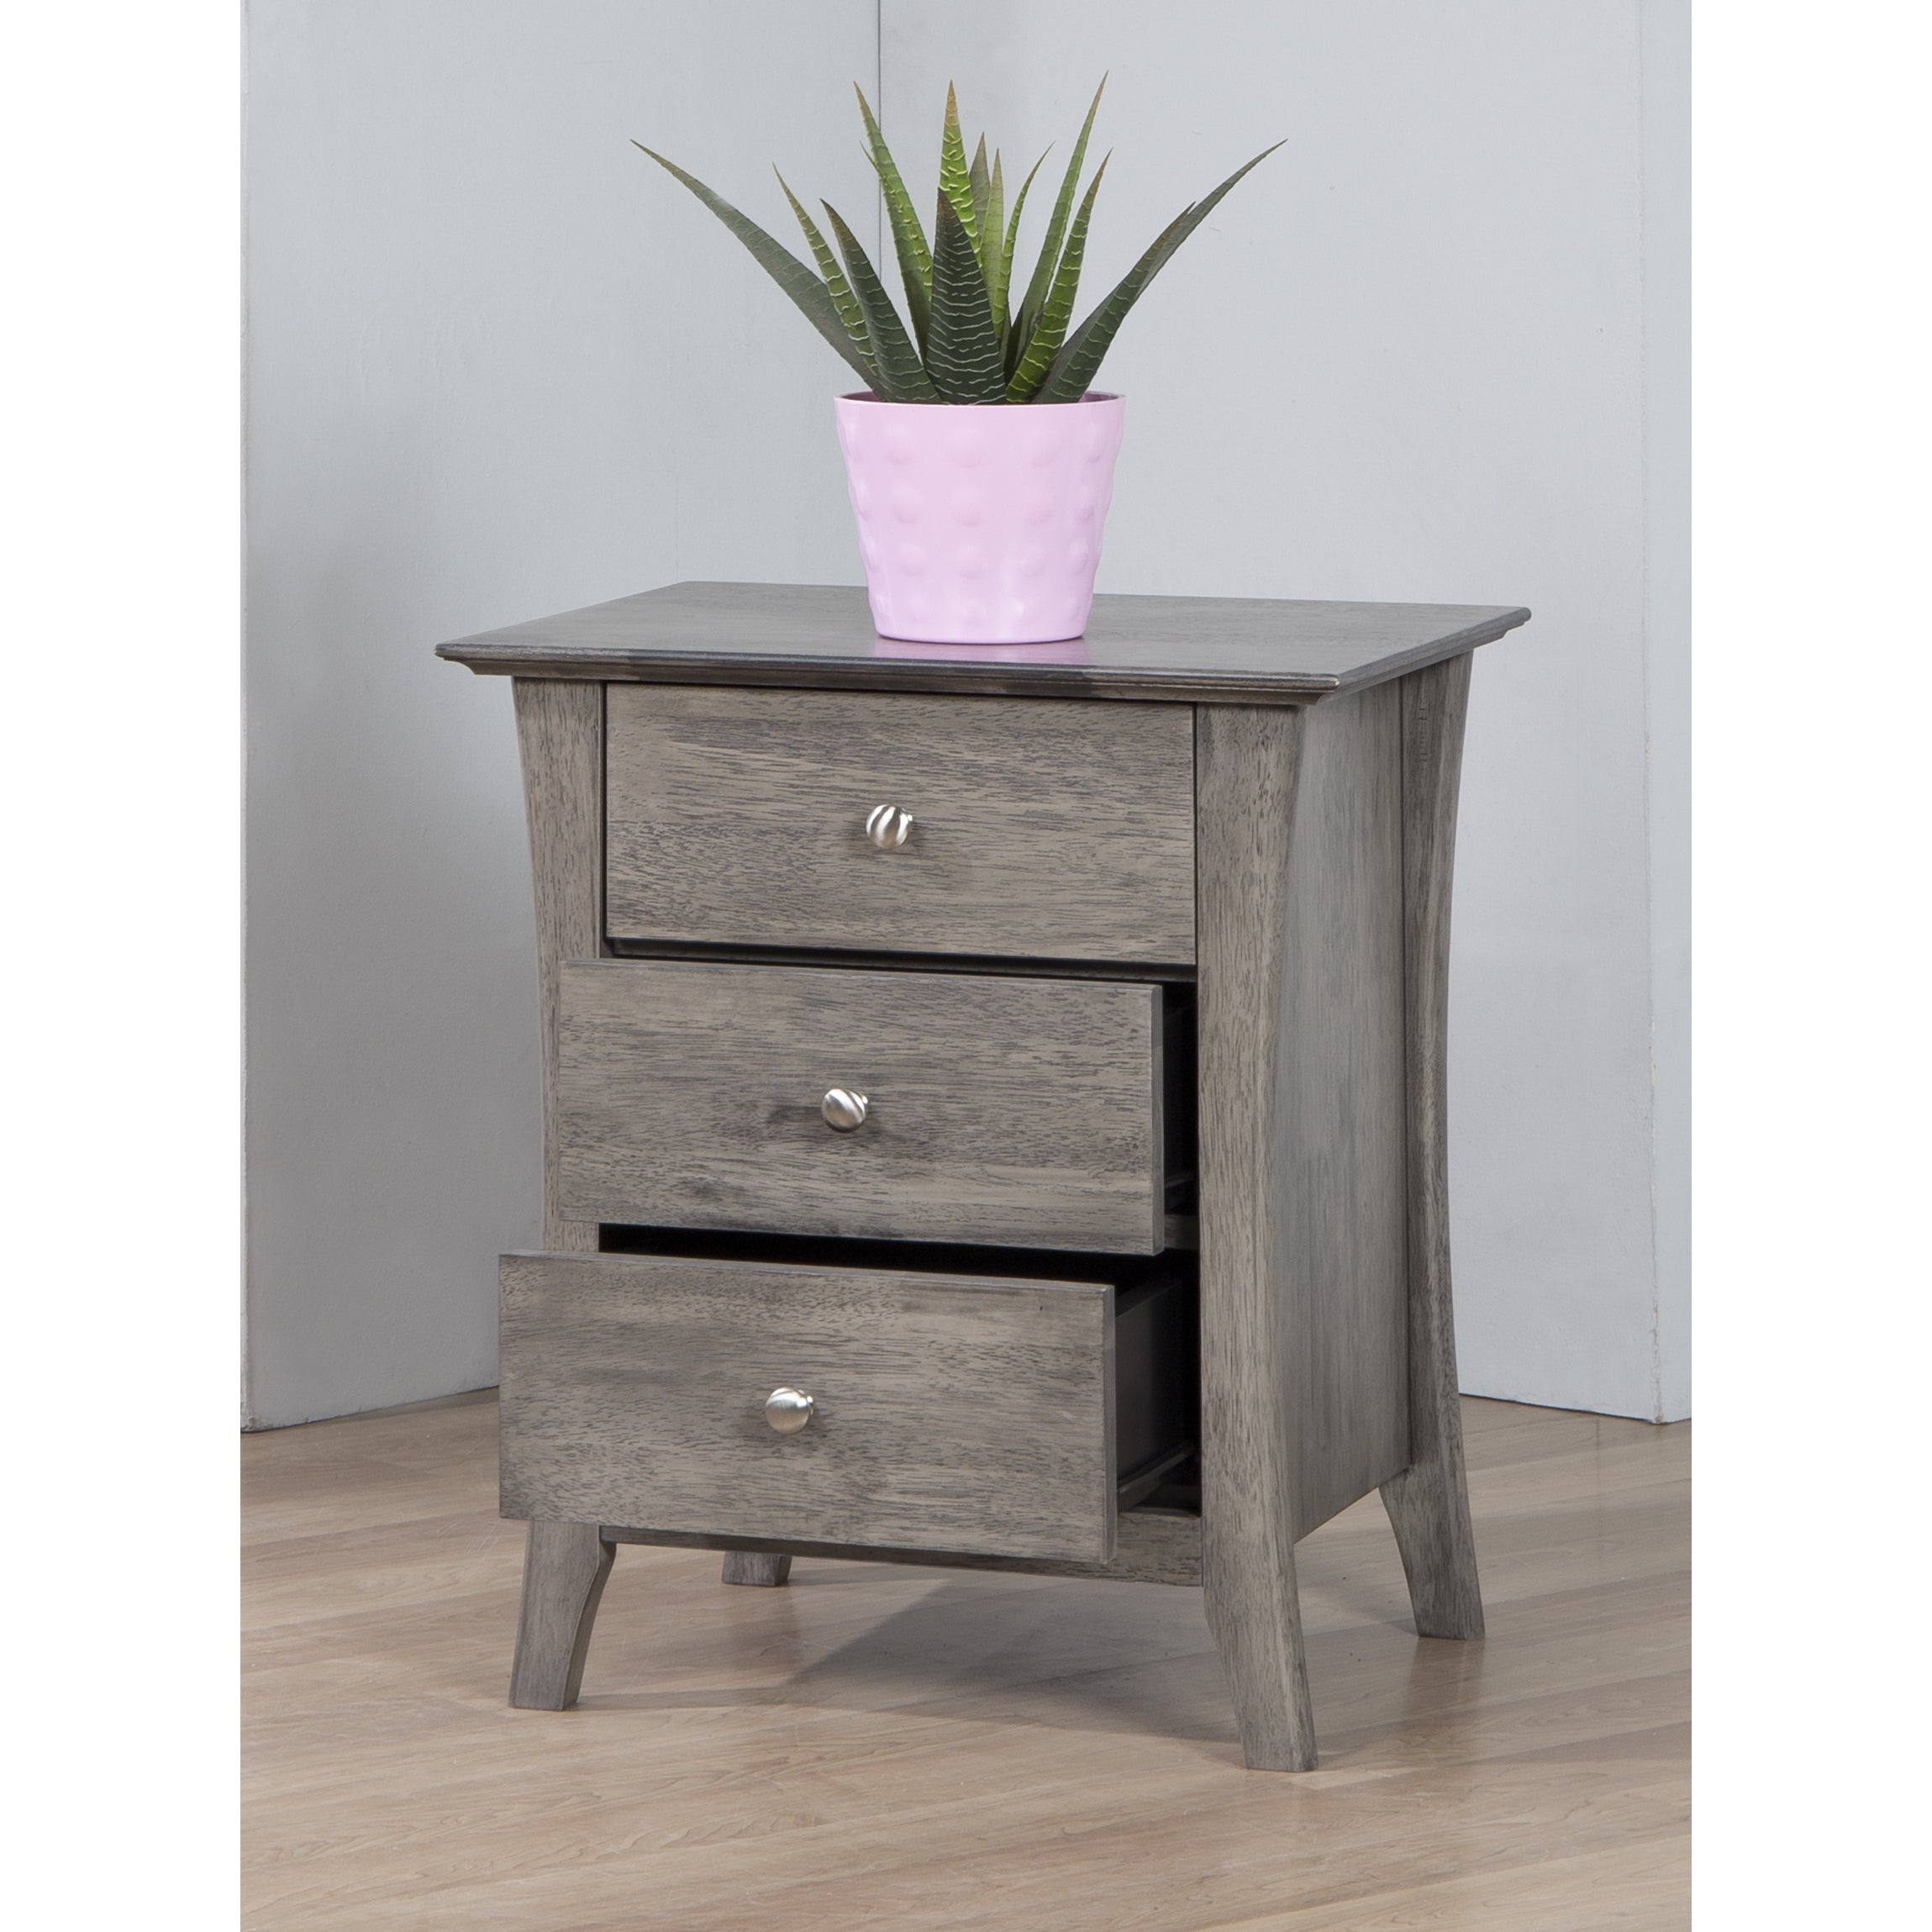 Copper Grove Vermont Stone Dark Burnt Grey 3 Drawer Bedside Table Free Shipping Today 80008411